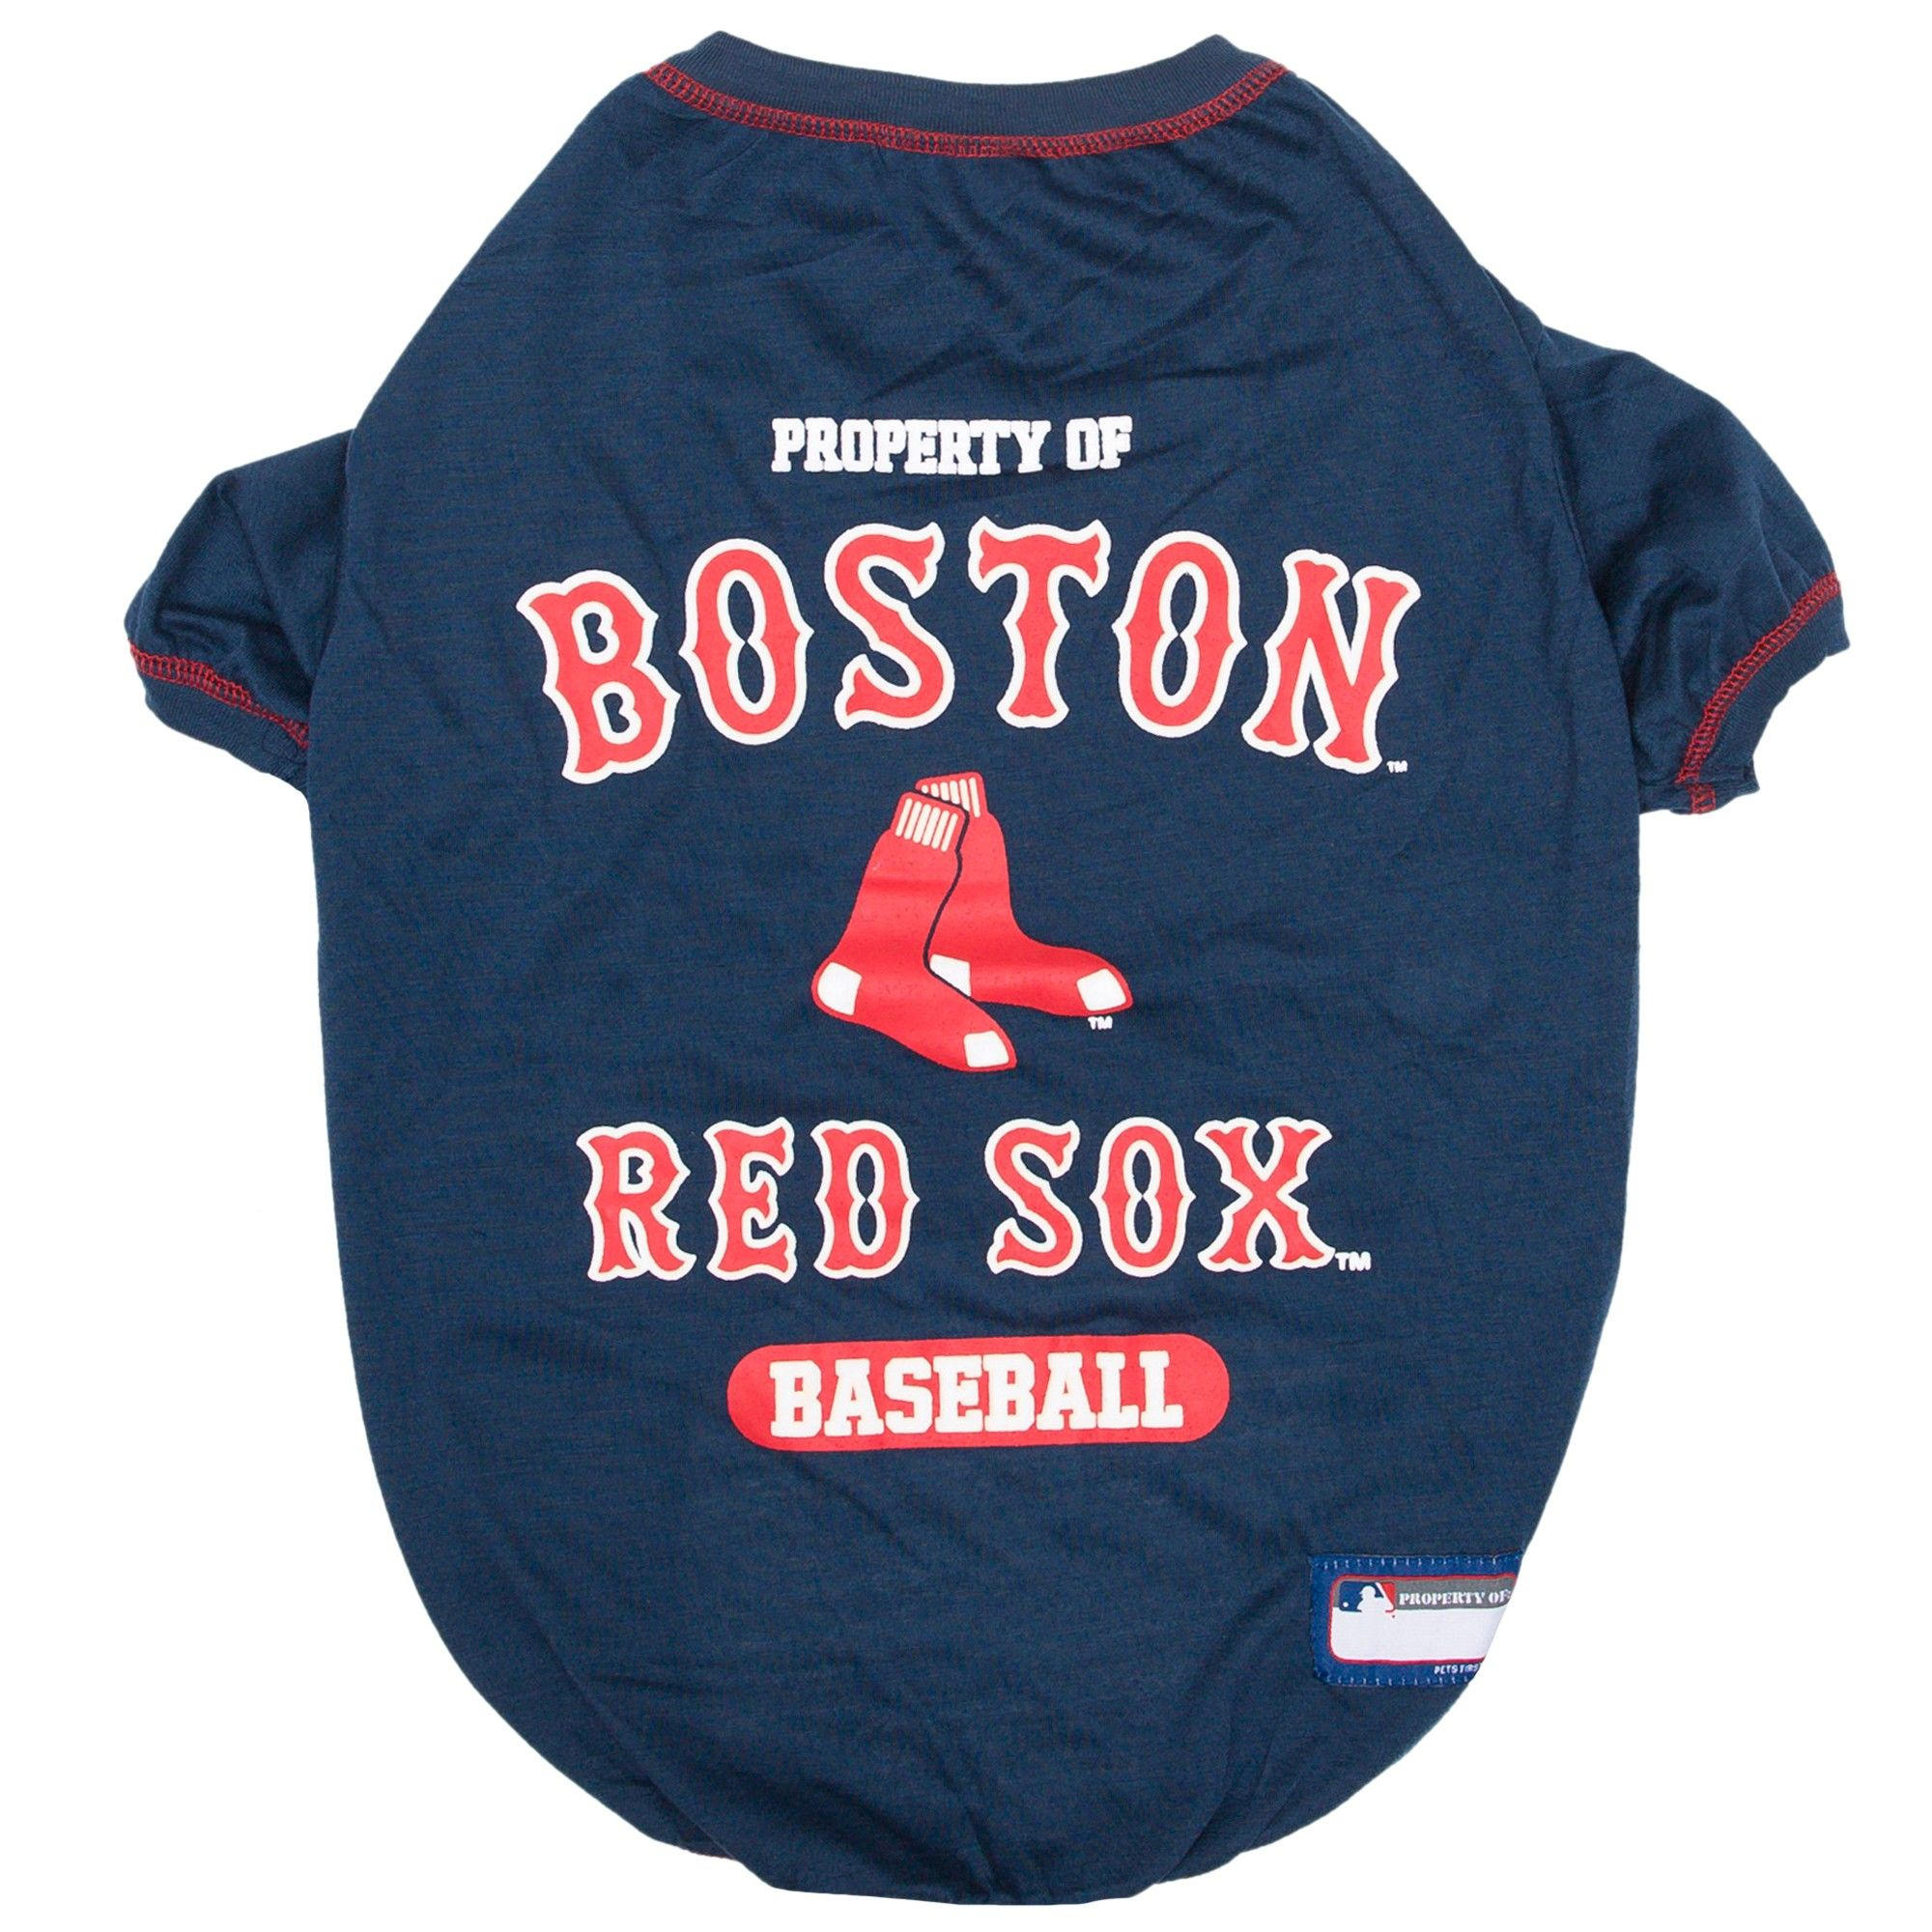 dc183df6431 Boston Red Sox Pets First Pet Baseball T-Shirt - XL in 2019 ...